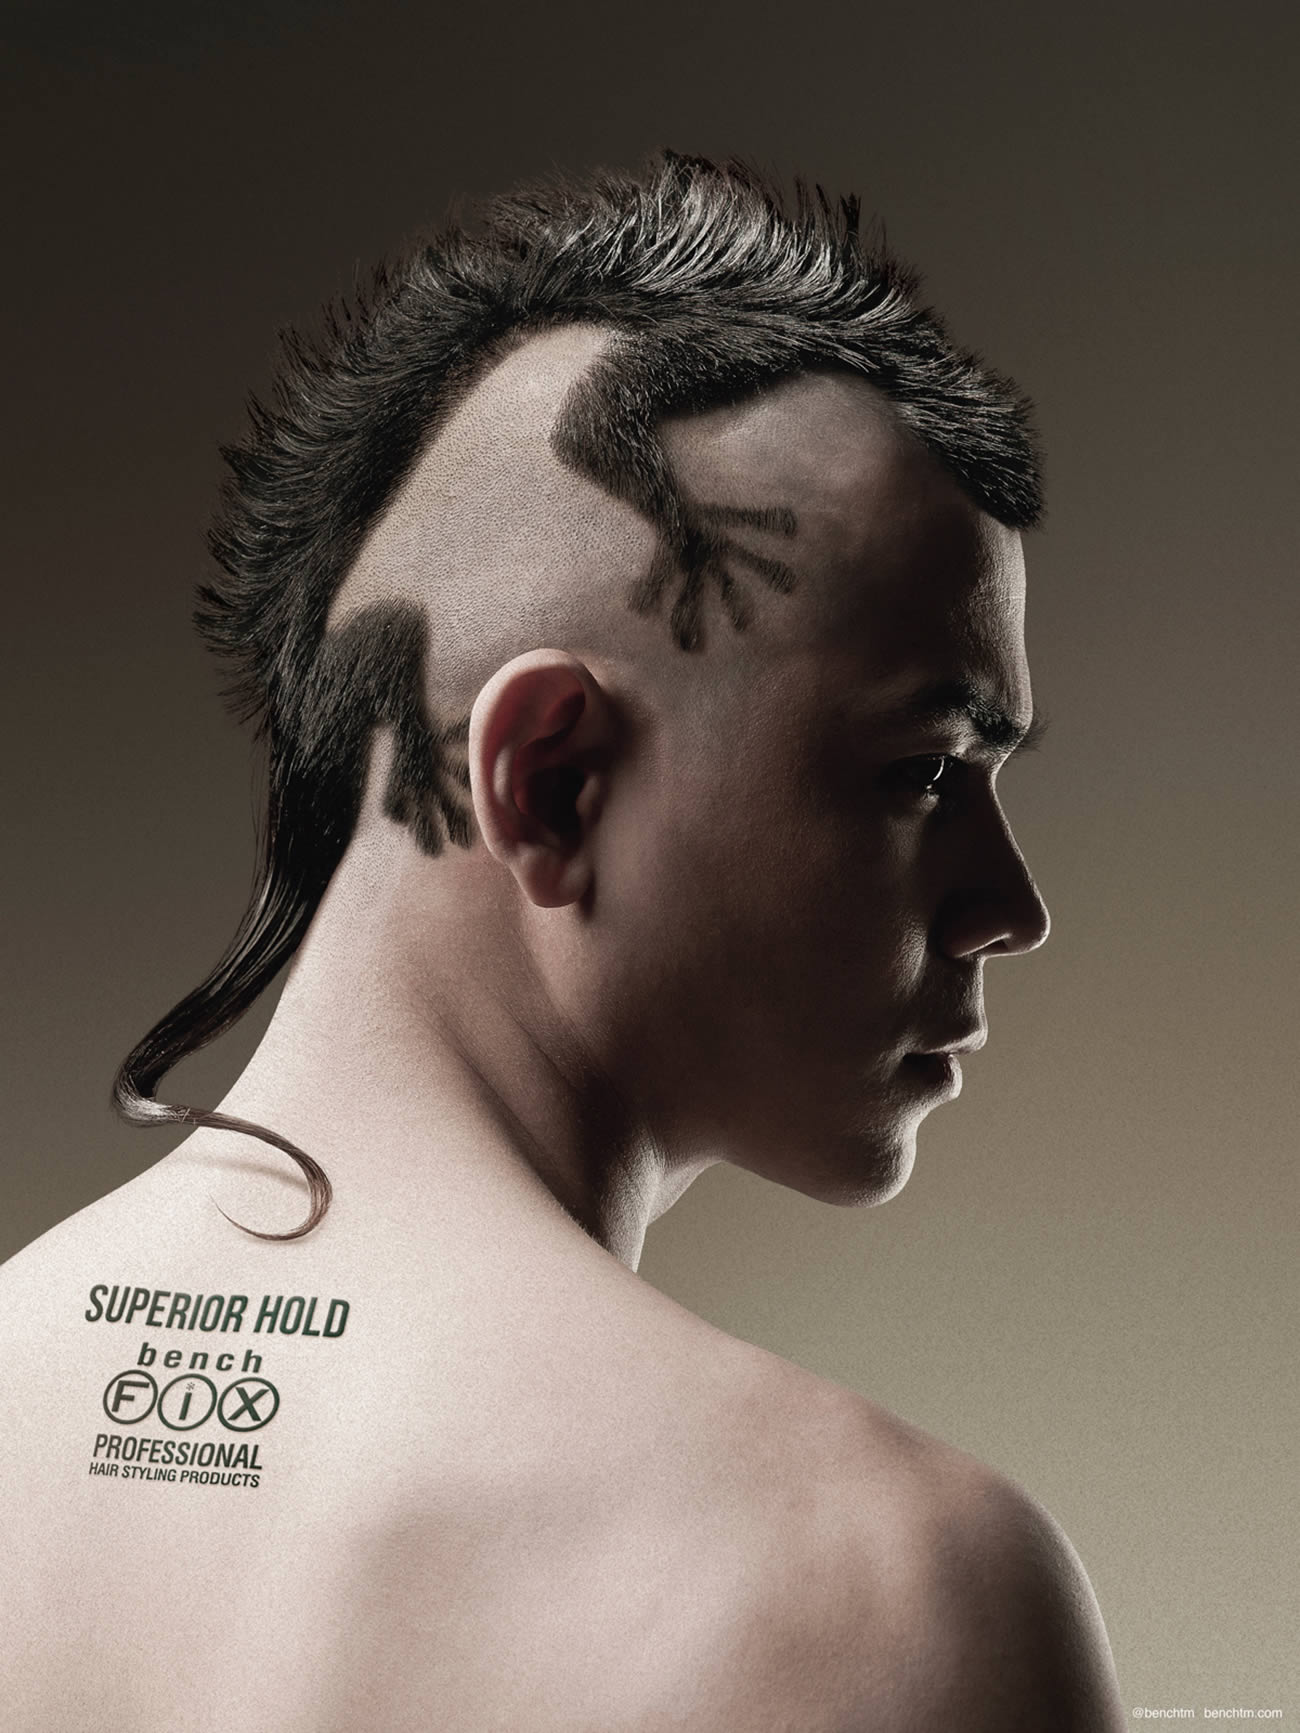 """Bench Fix Hairstyling Products: Gecko,"" by advertising agency TBWA\Santiago Mangada Puno (Philippines). Creative Directors: Melvin Mangada and Marci Reyes."